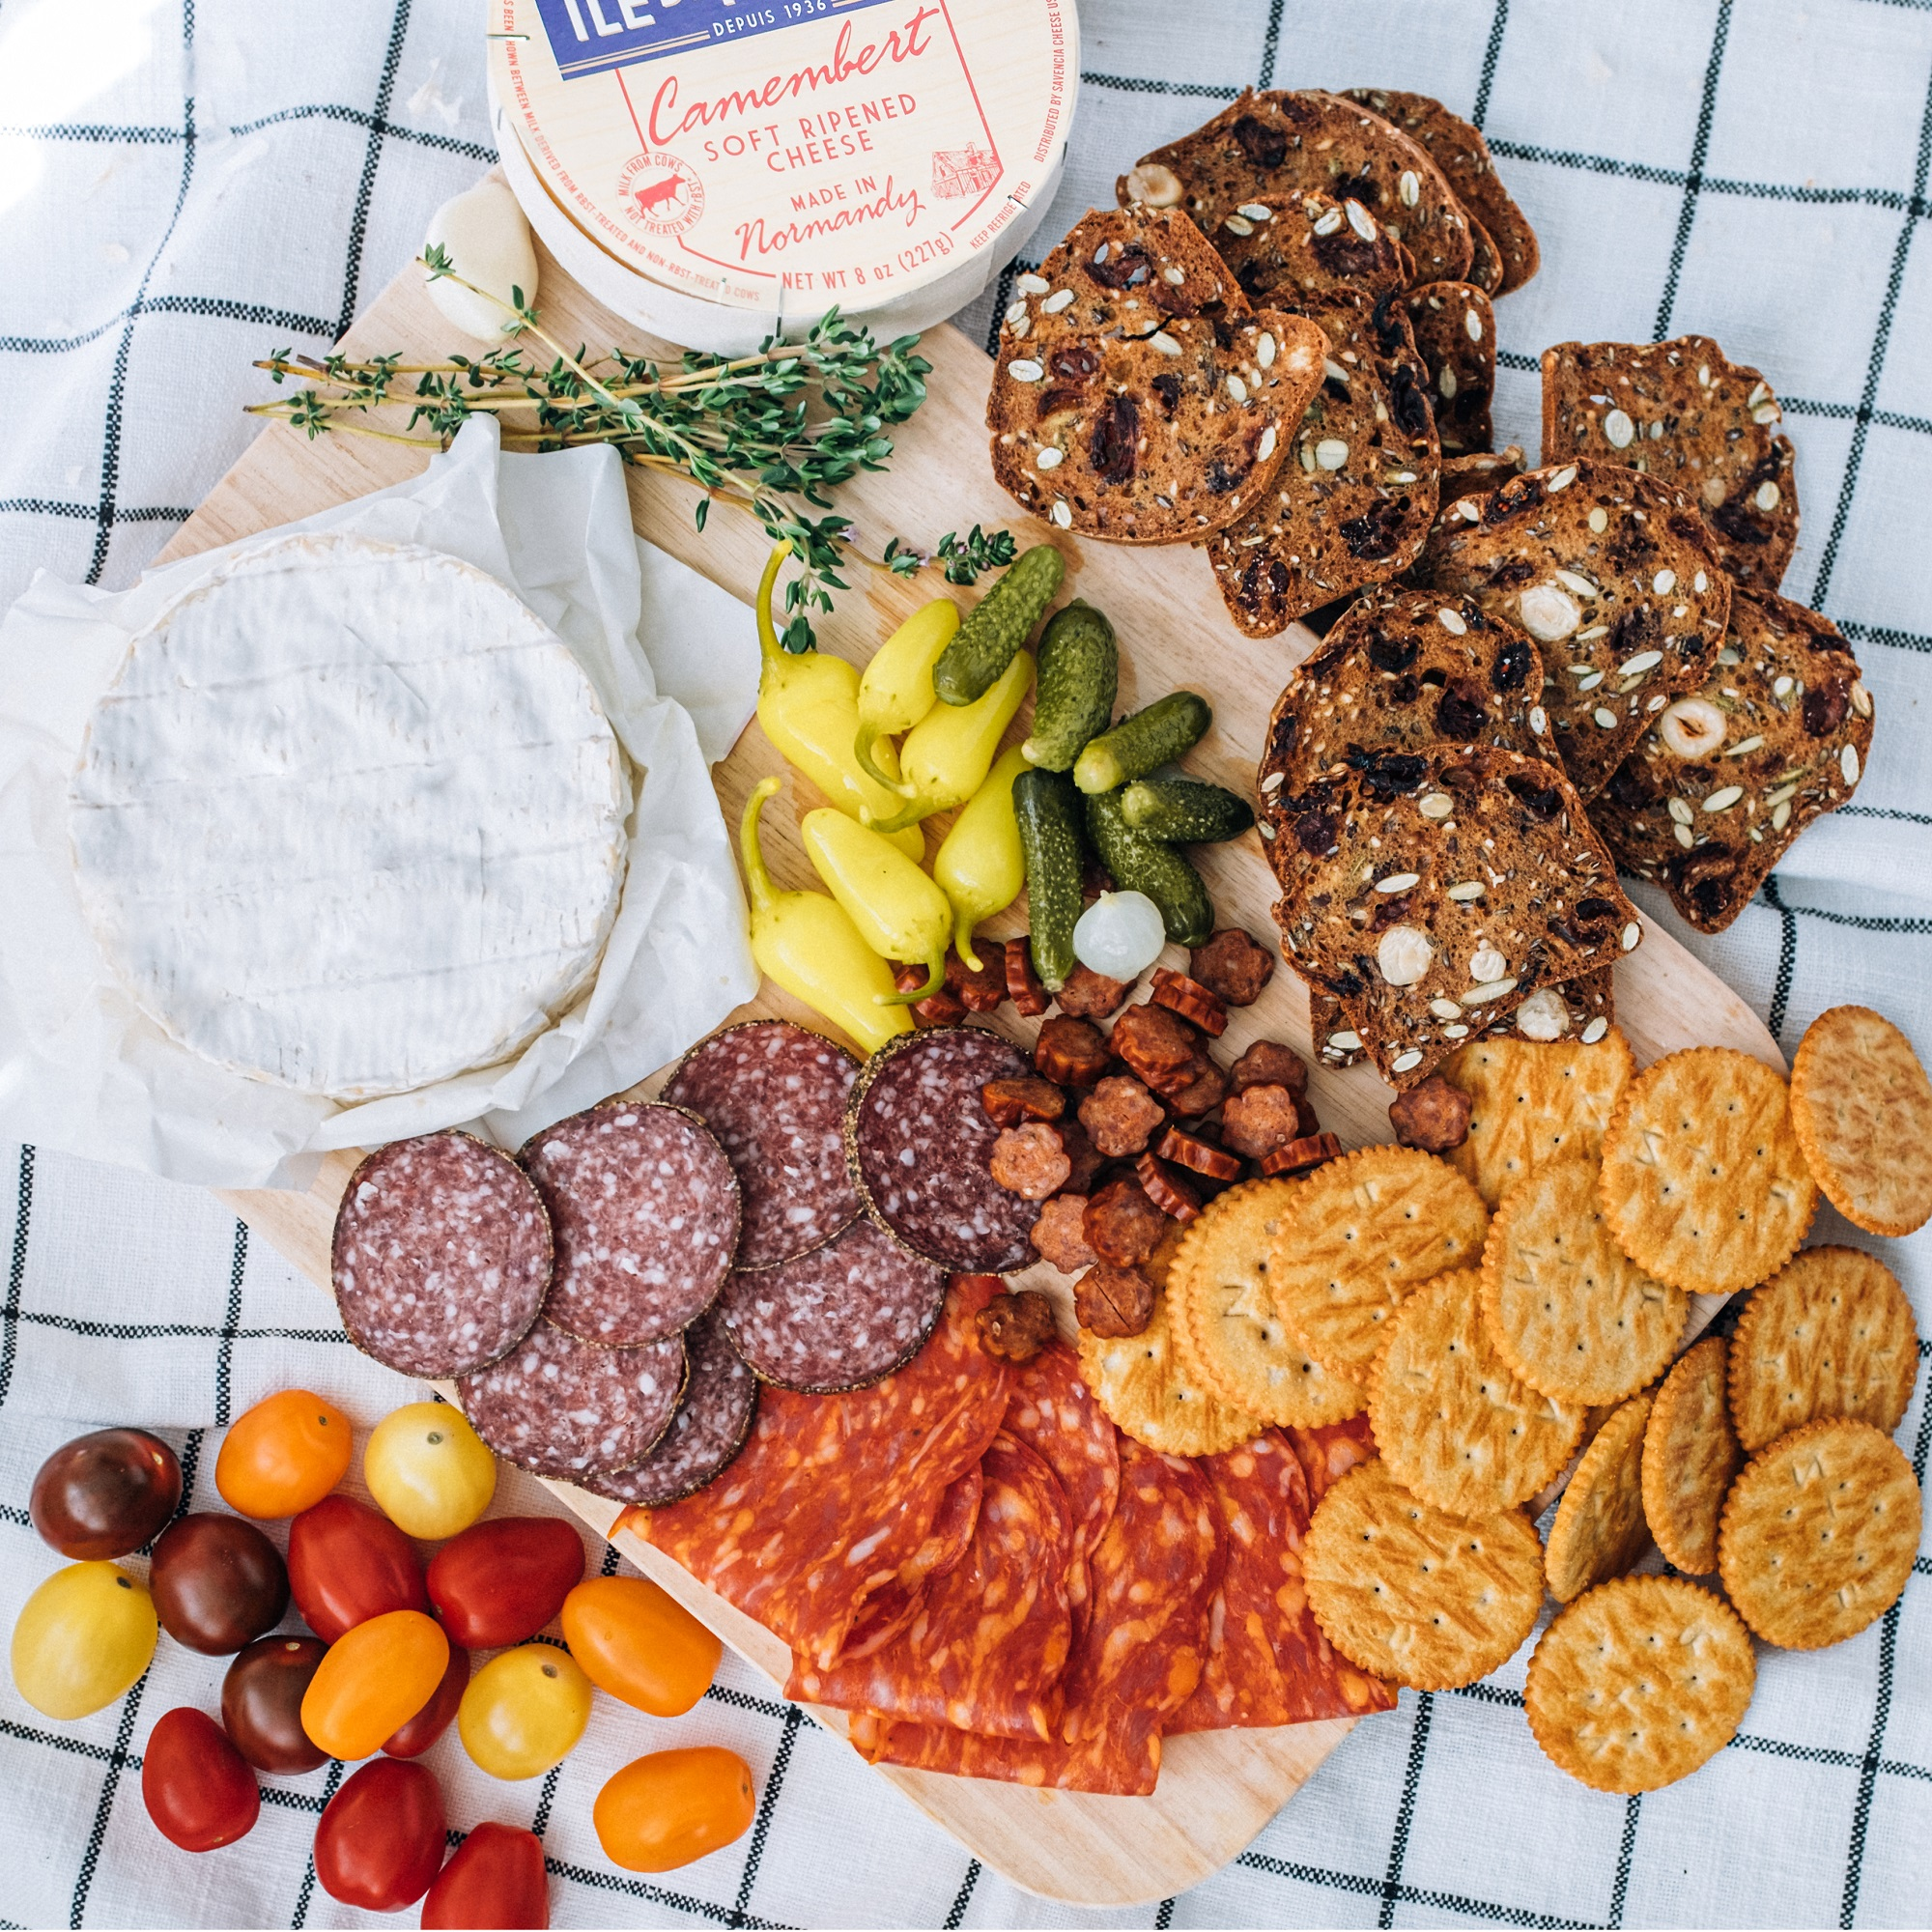 apero platter with ile de france camembert, charcuterie, vegetables and crackers